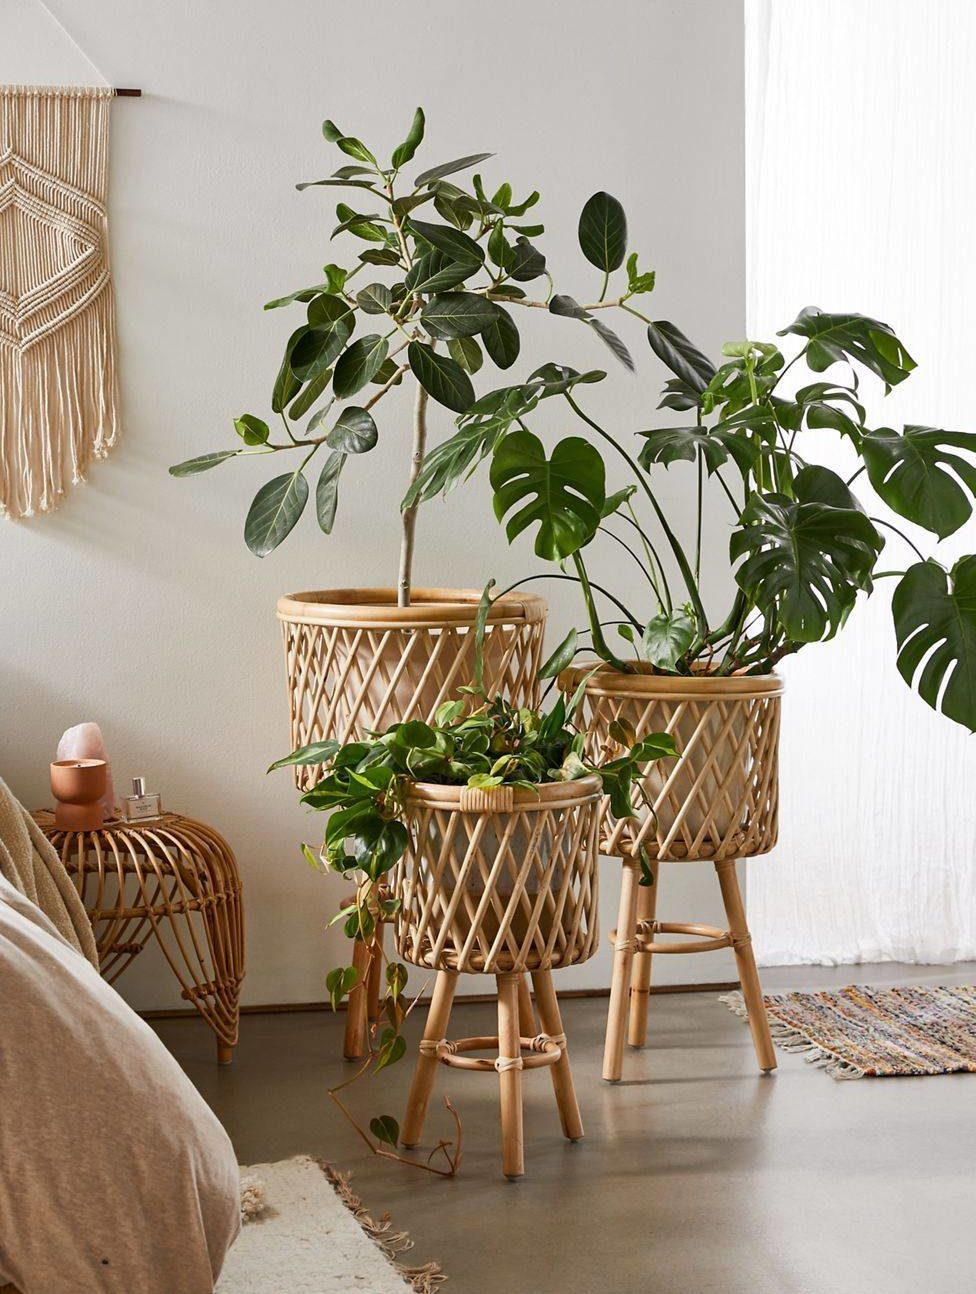 Boho Chic Trend Rattan Plant Stands in Home